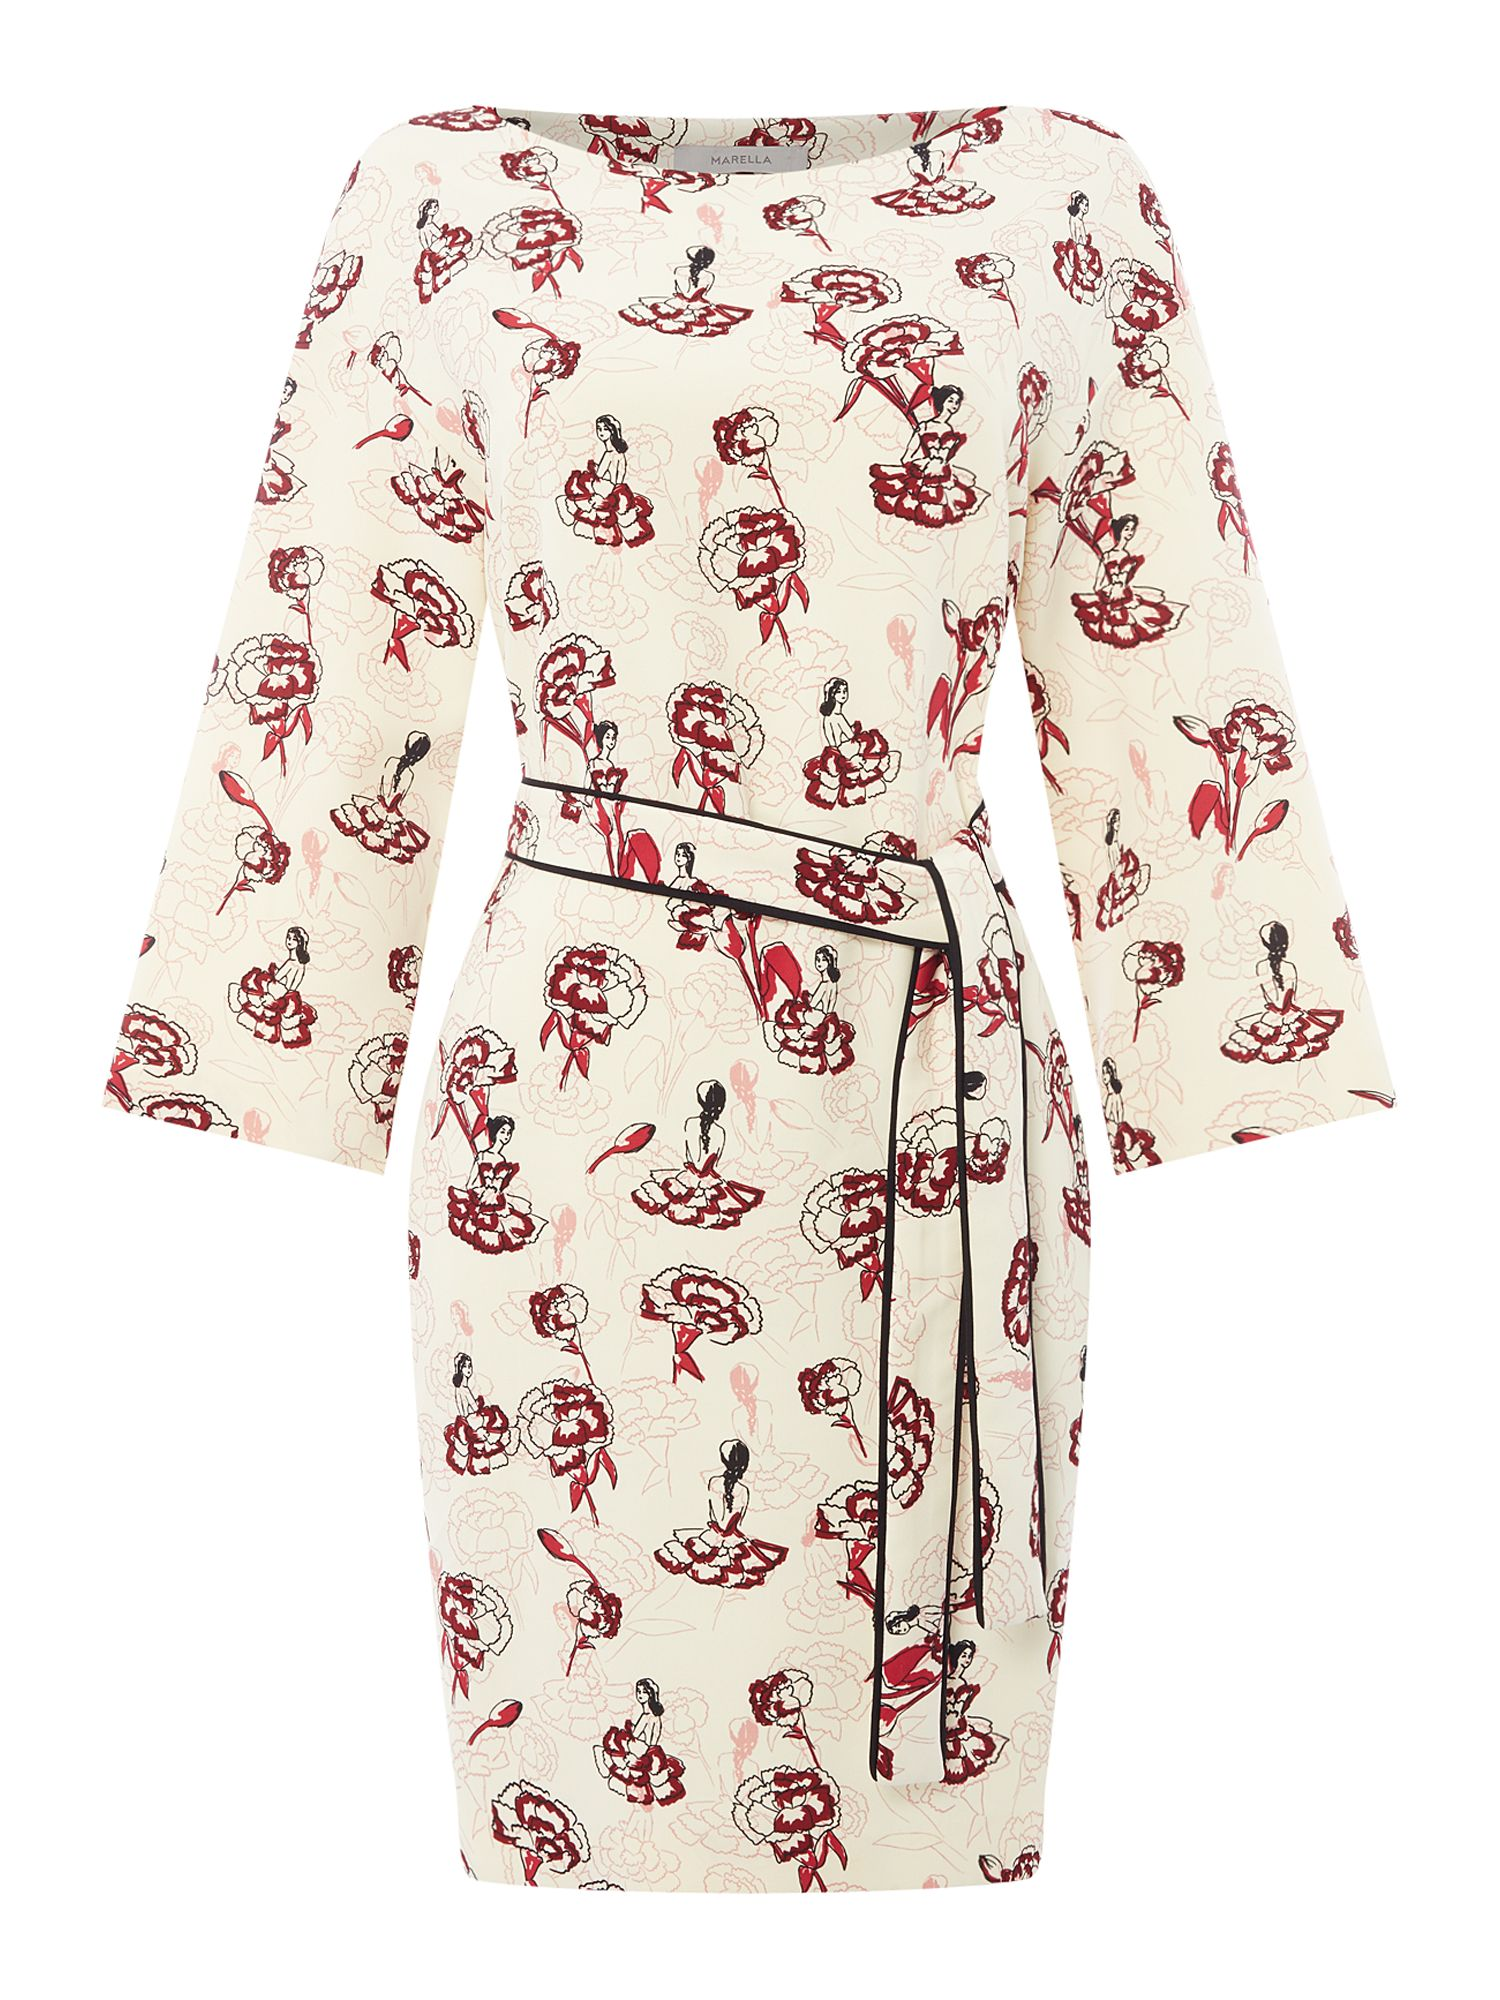 Marella Bacheca ballerina printed dress with waist tie, Cream